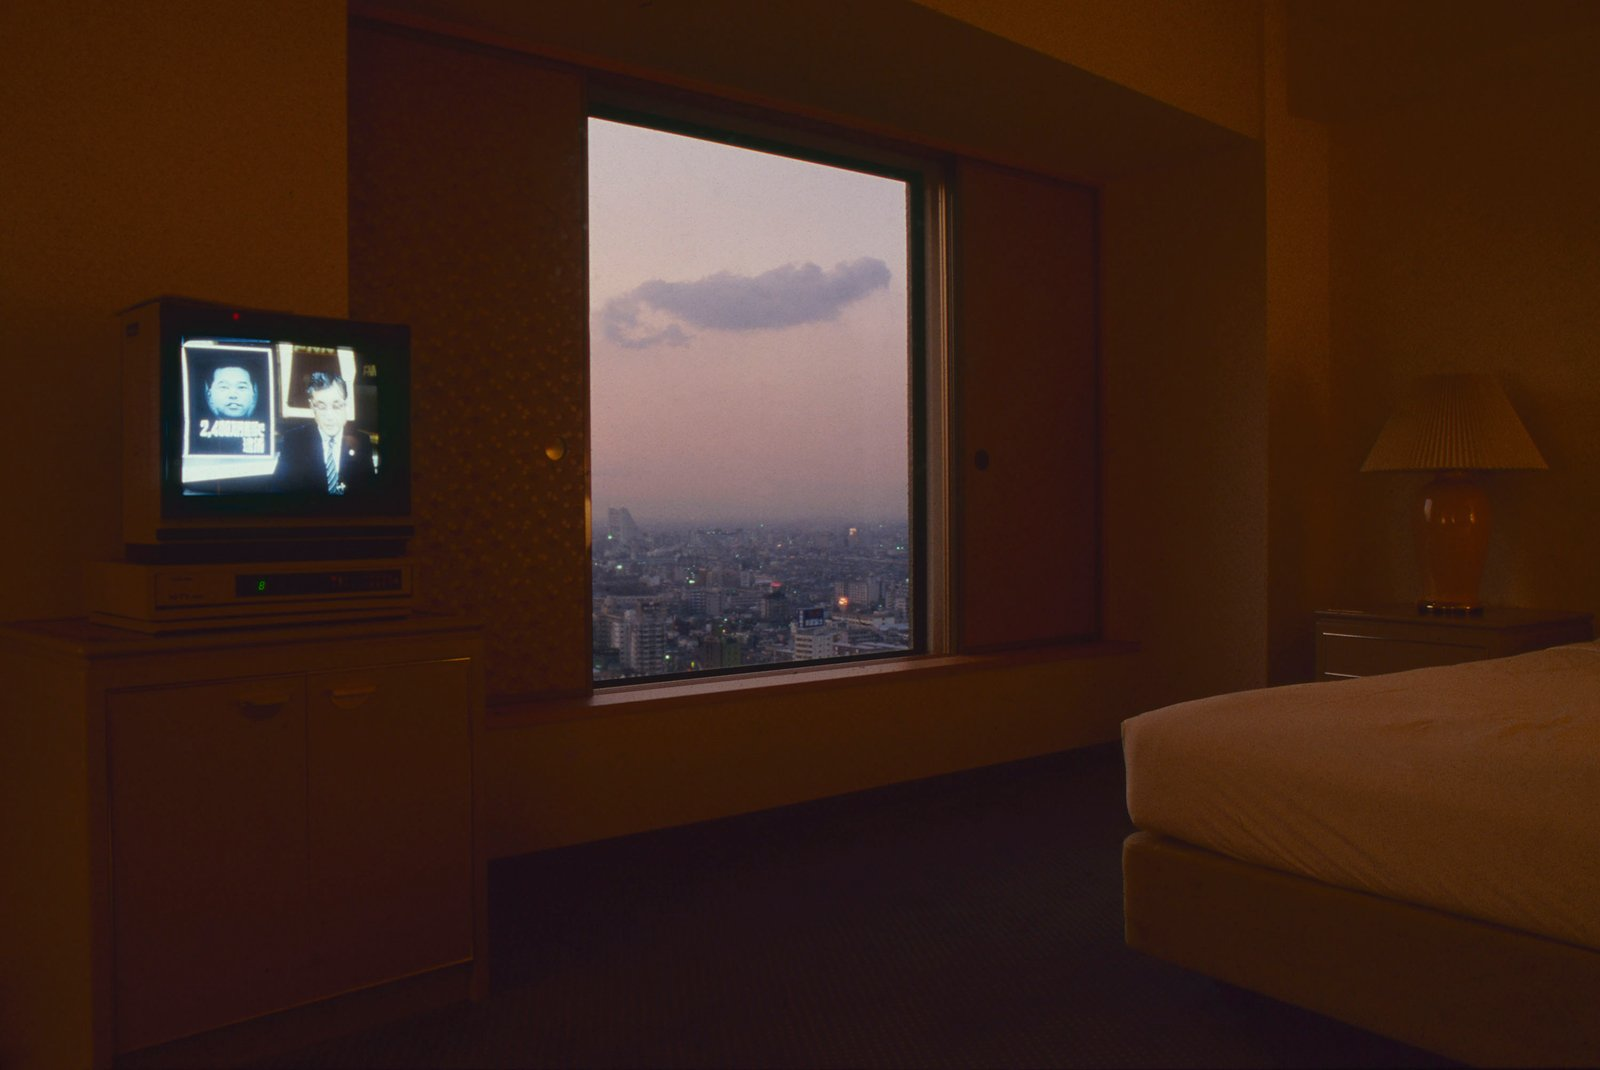 Tokyo Hilton (Television and Cloud)